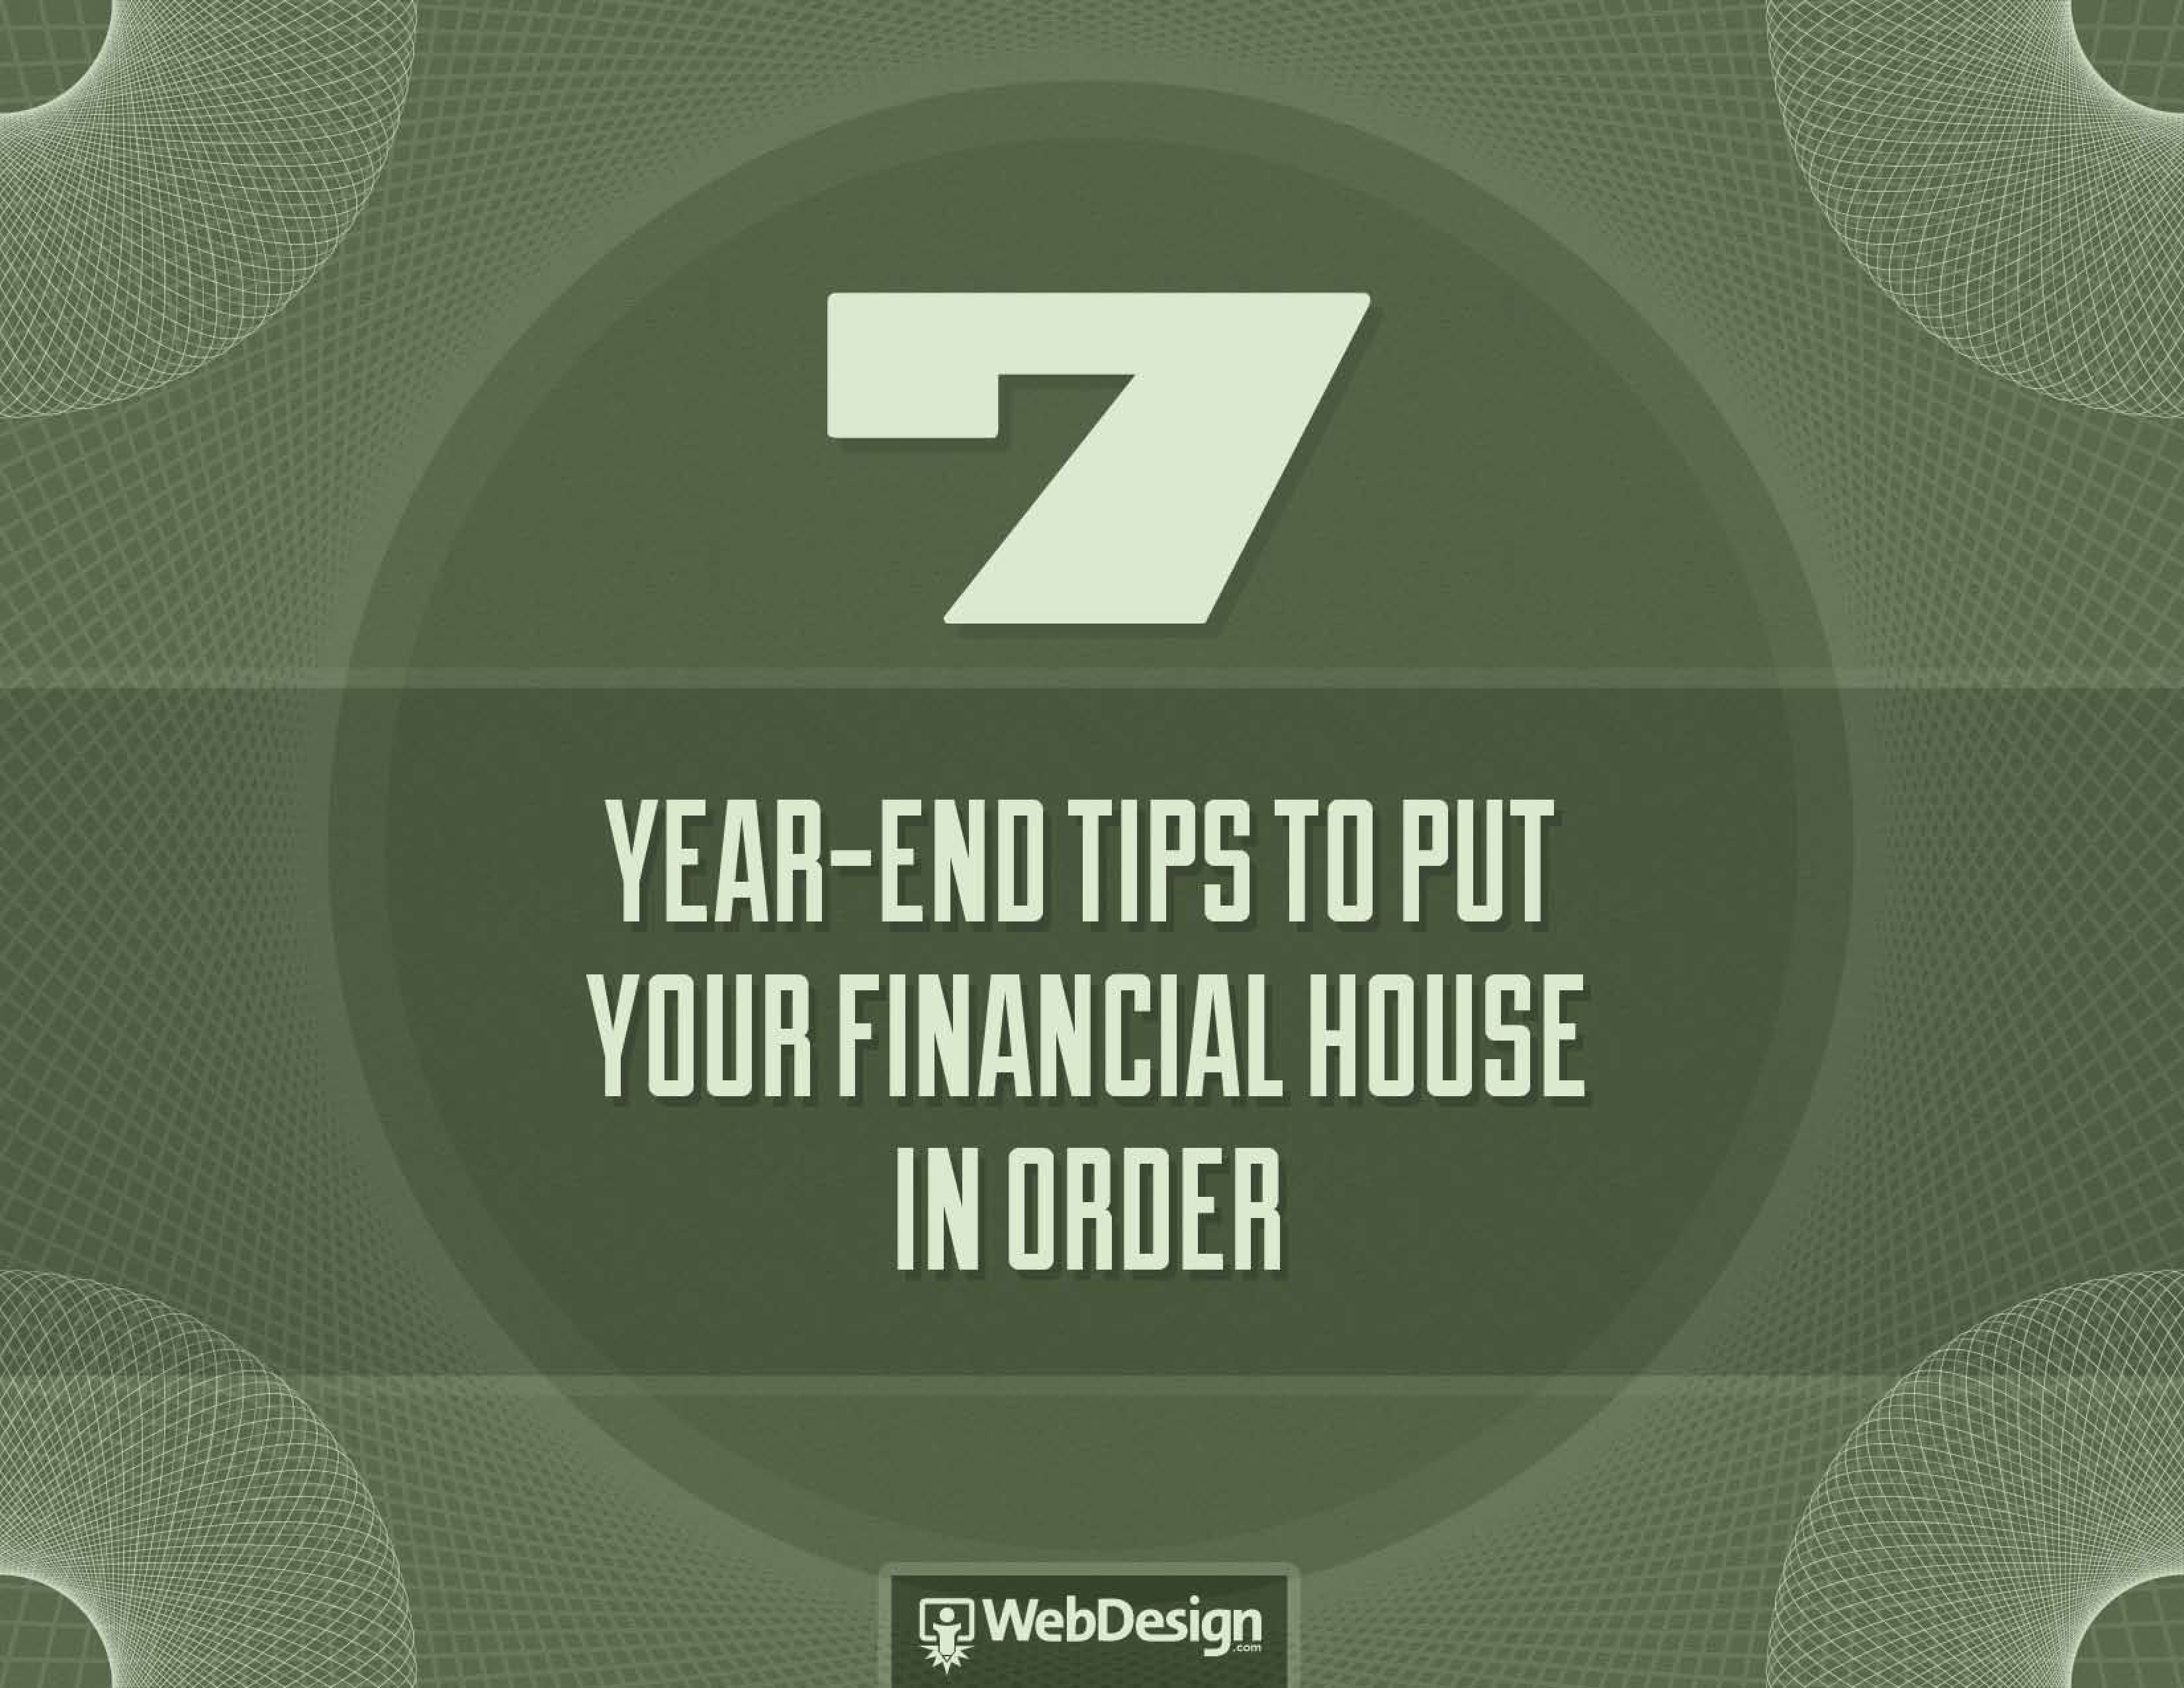 7 Year End Tips To Put Your Financial House In Order